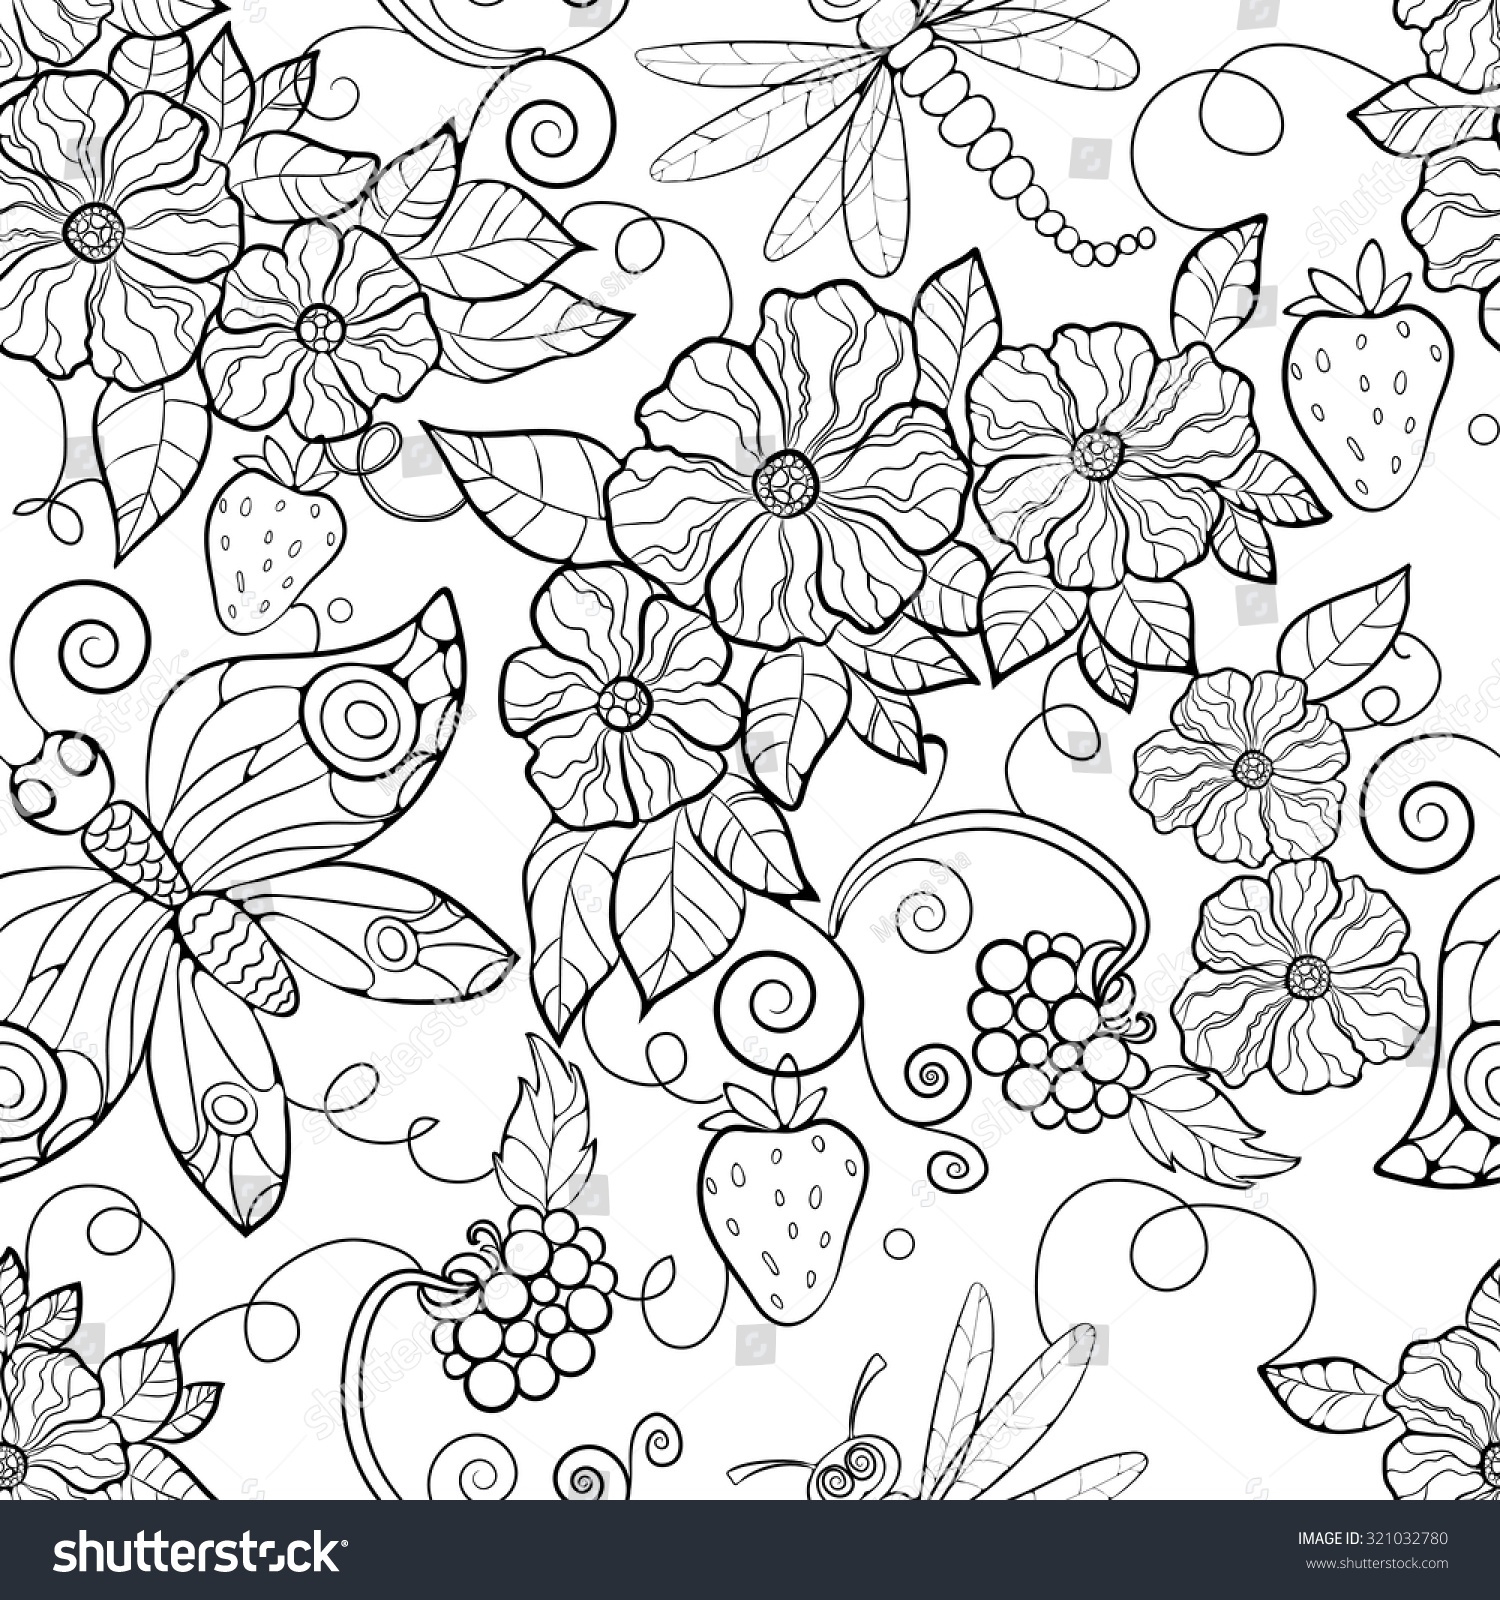 coloring pages free printable full size pictures to color - HD 1500×1600